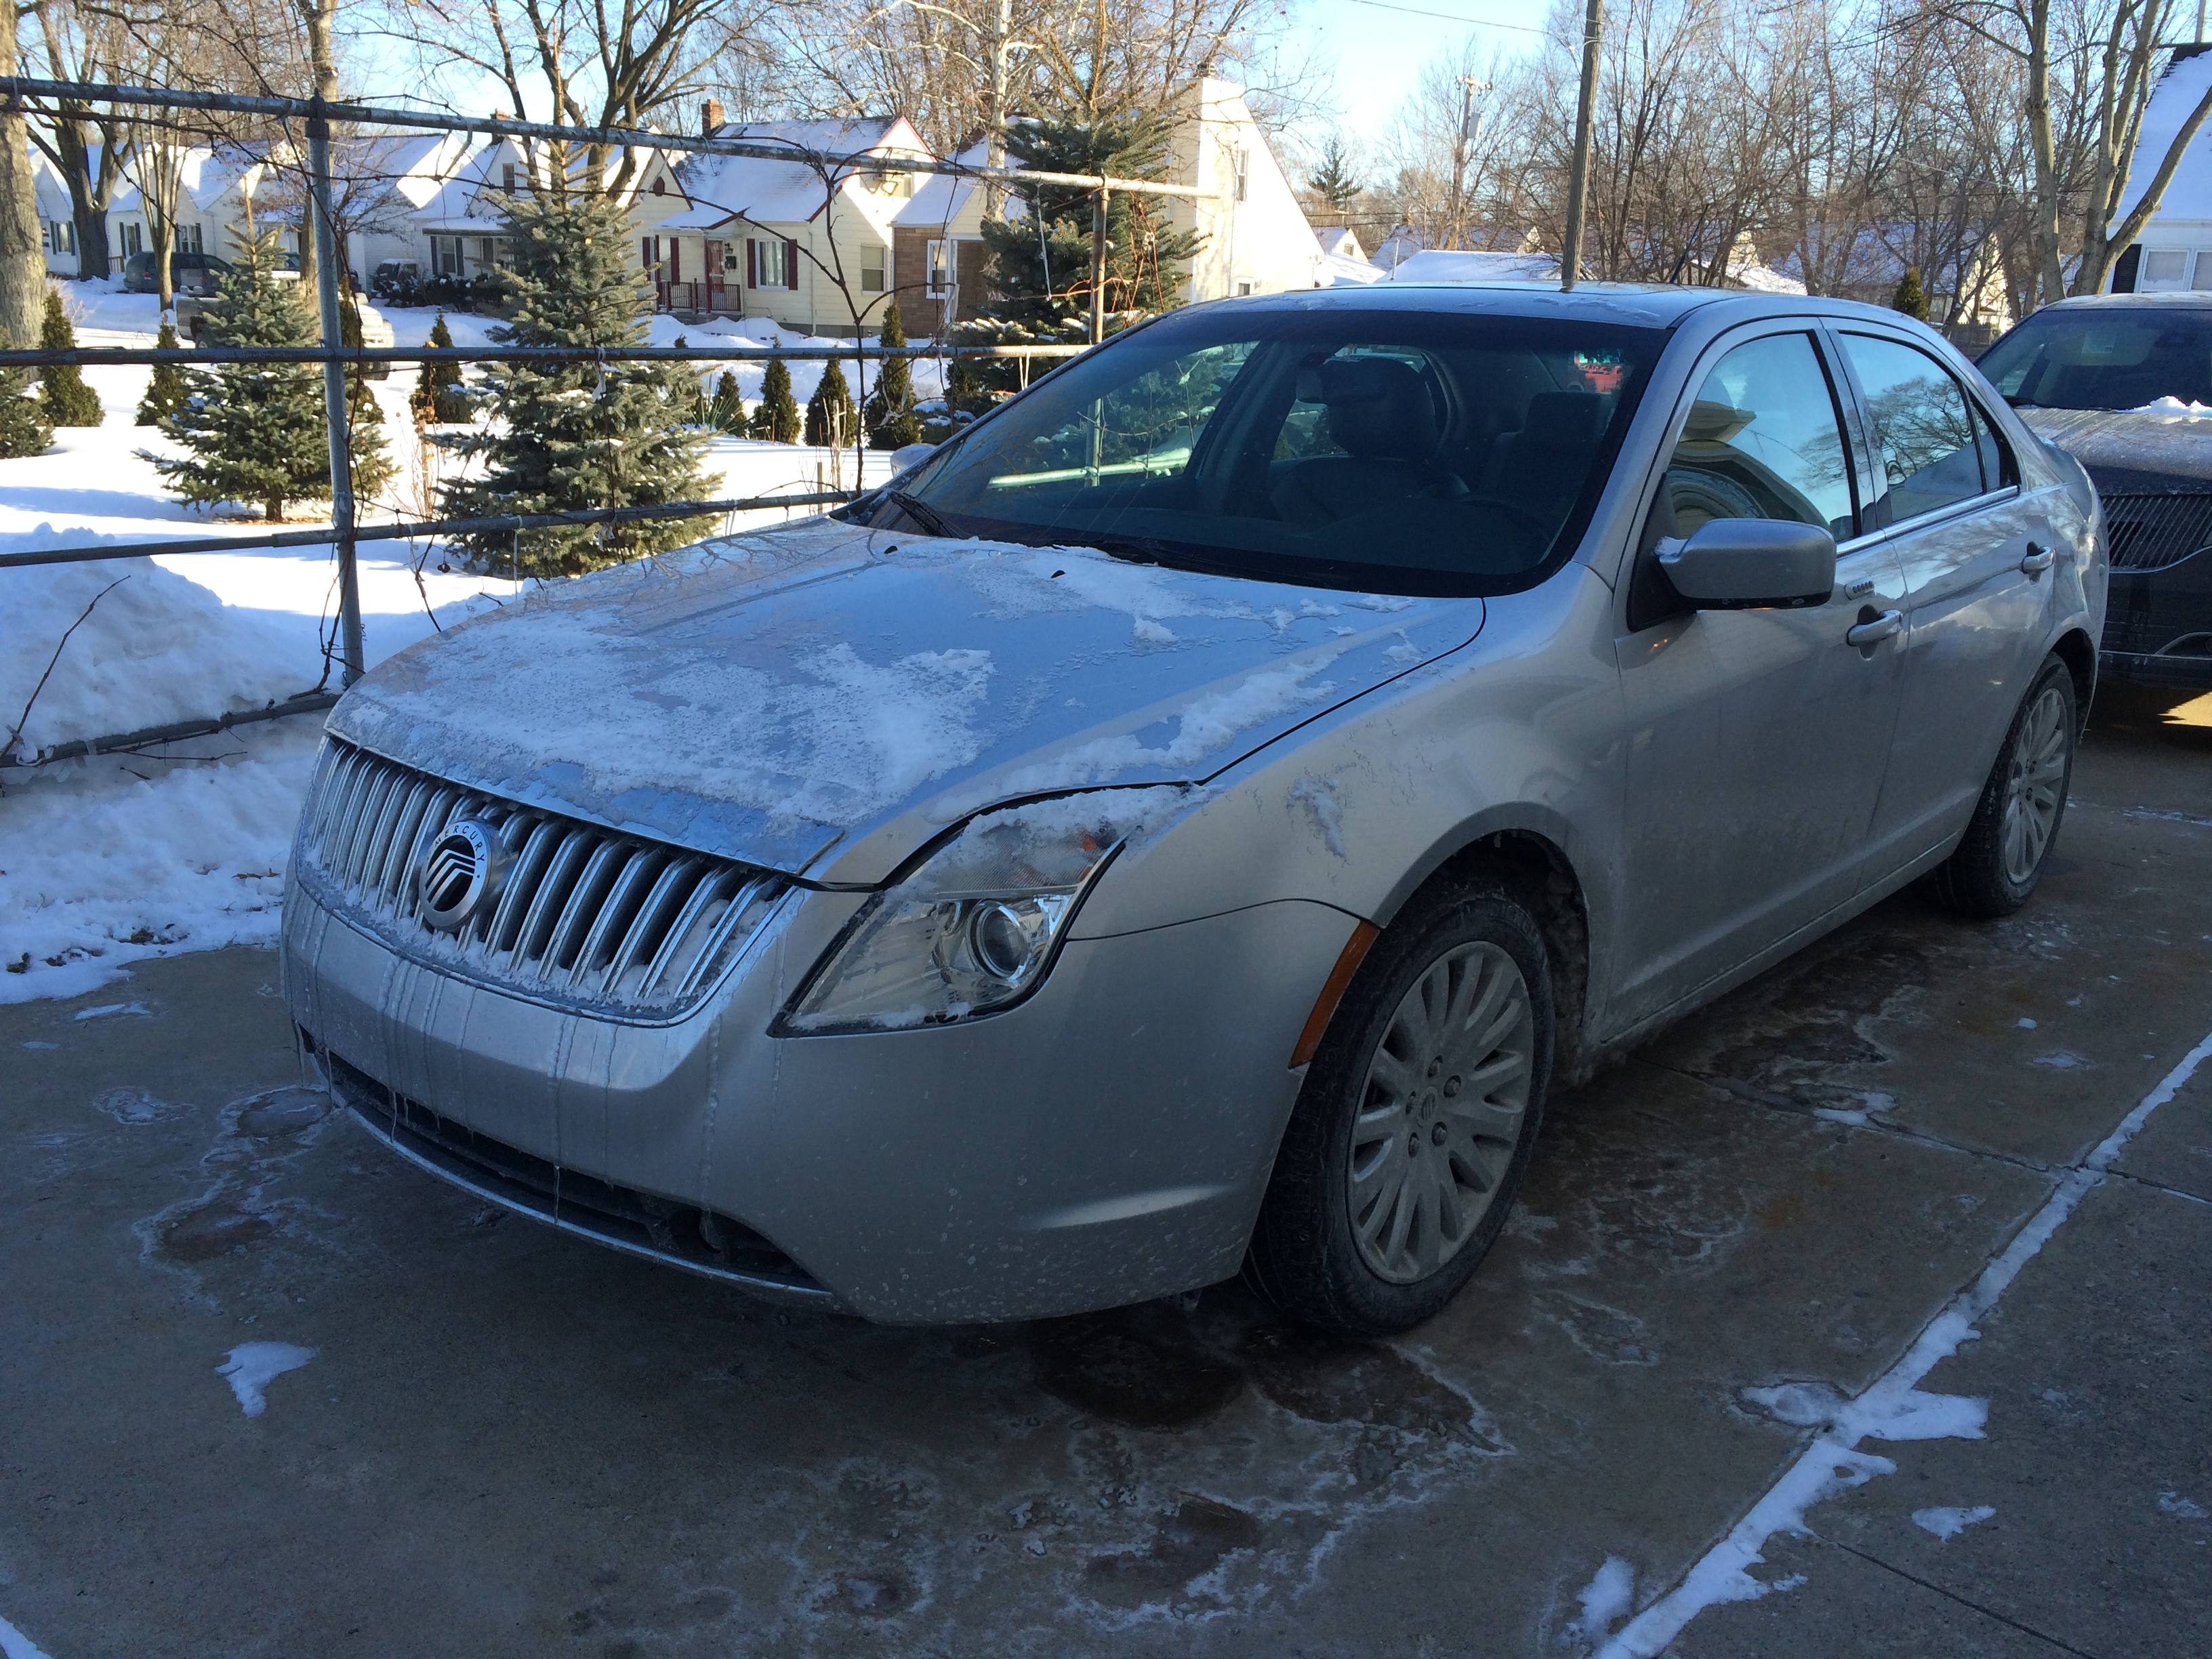 2010 Mercury Milan Hybrid Buds Auto Used Cars For Sale